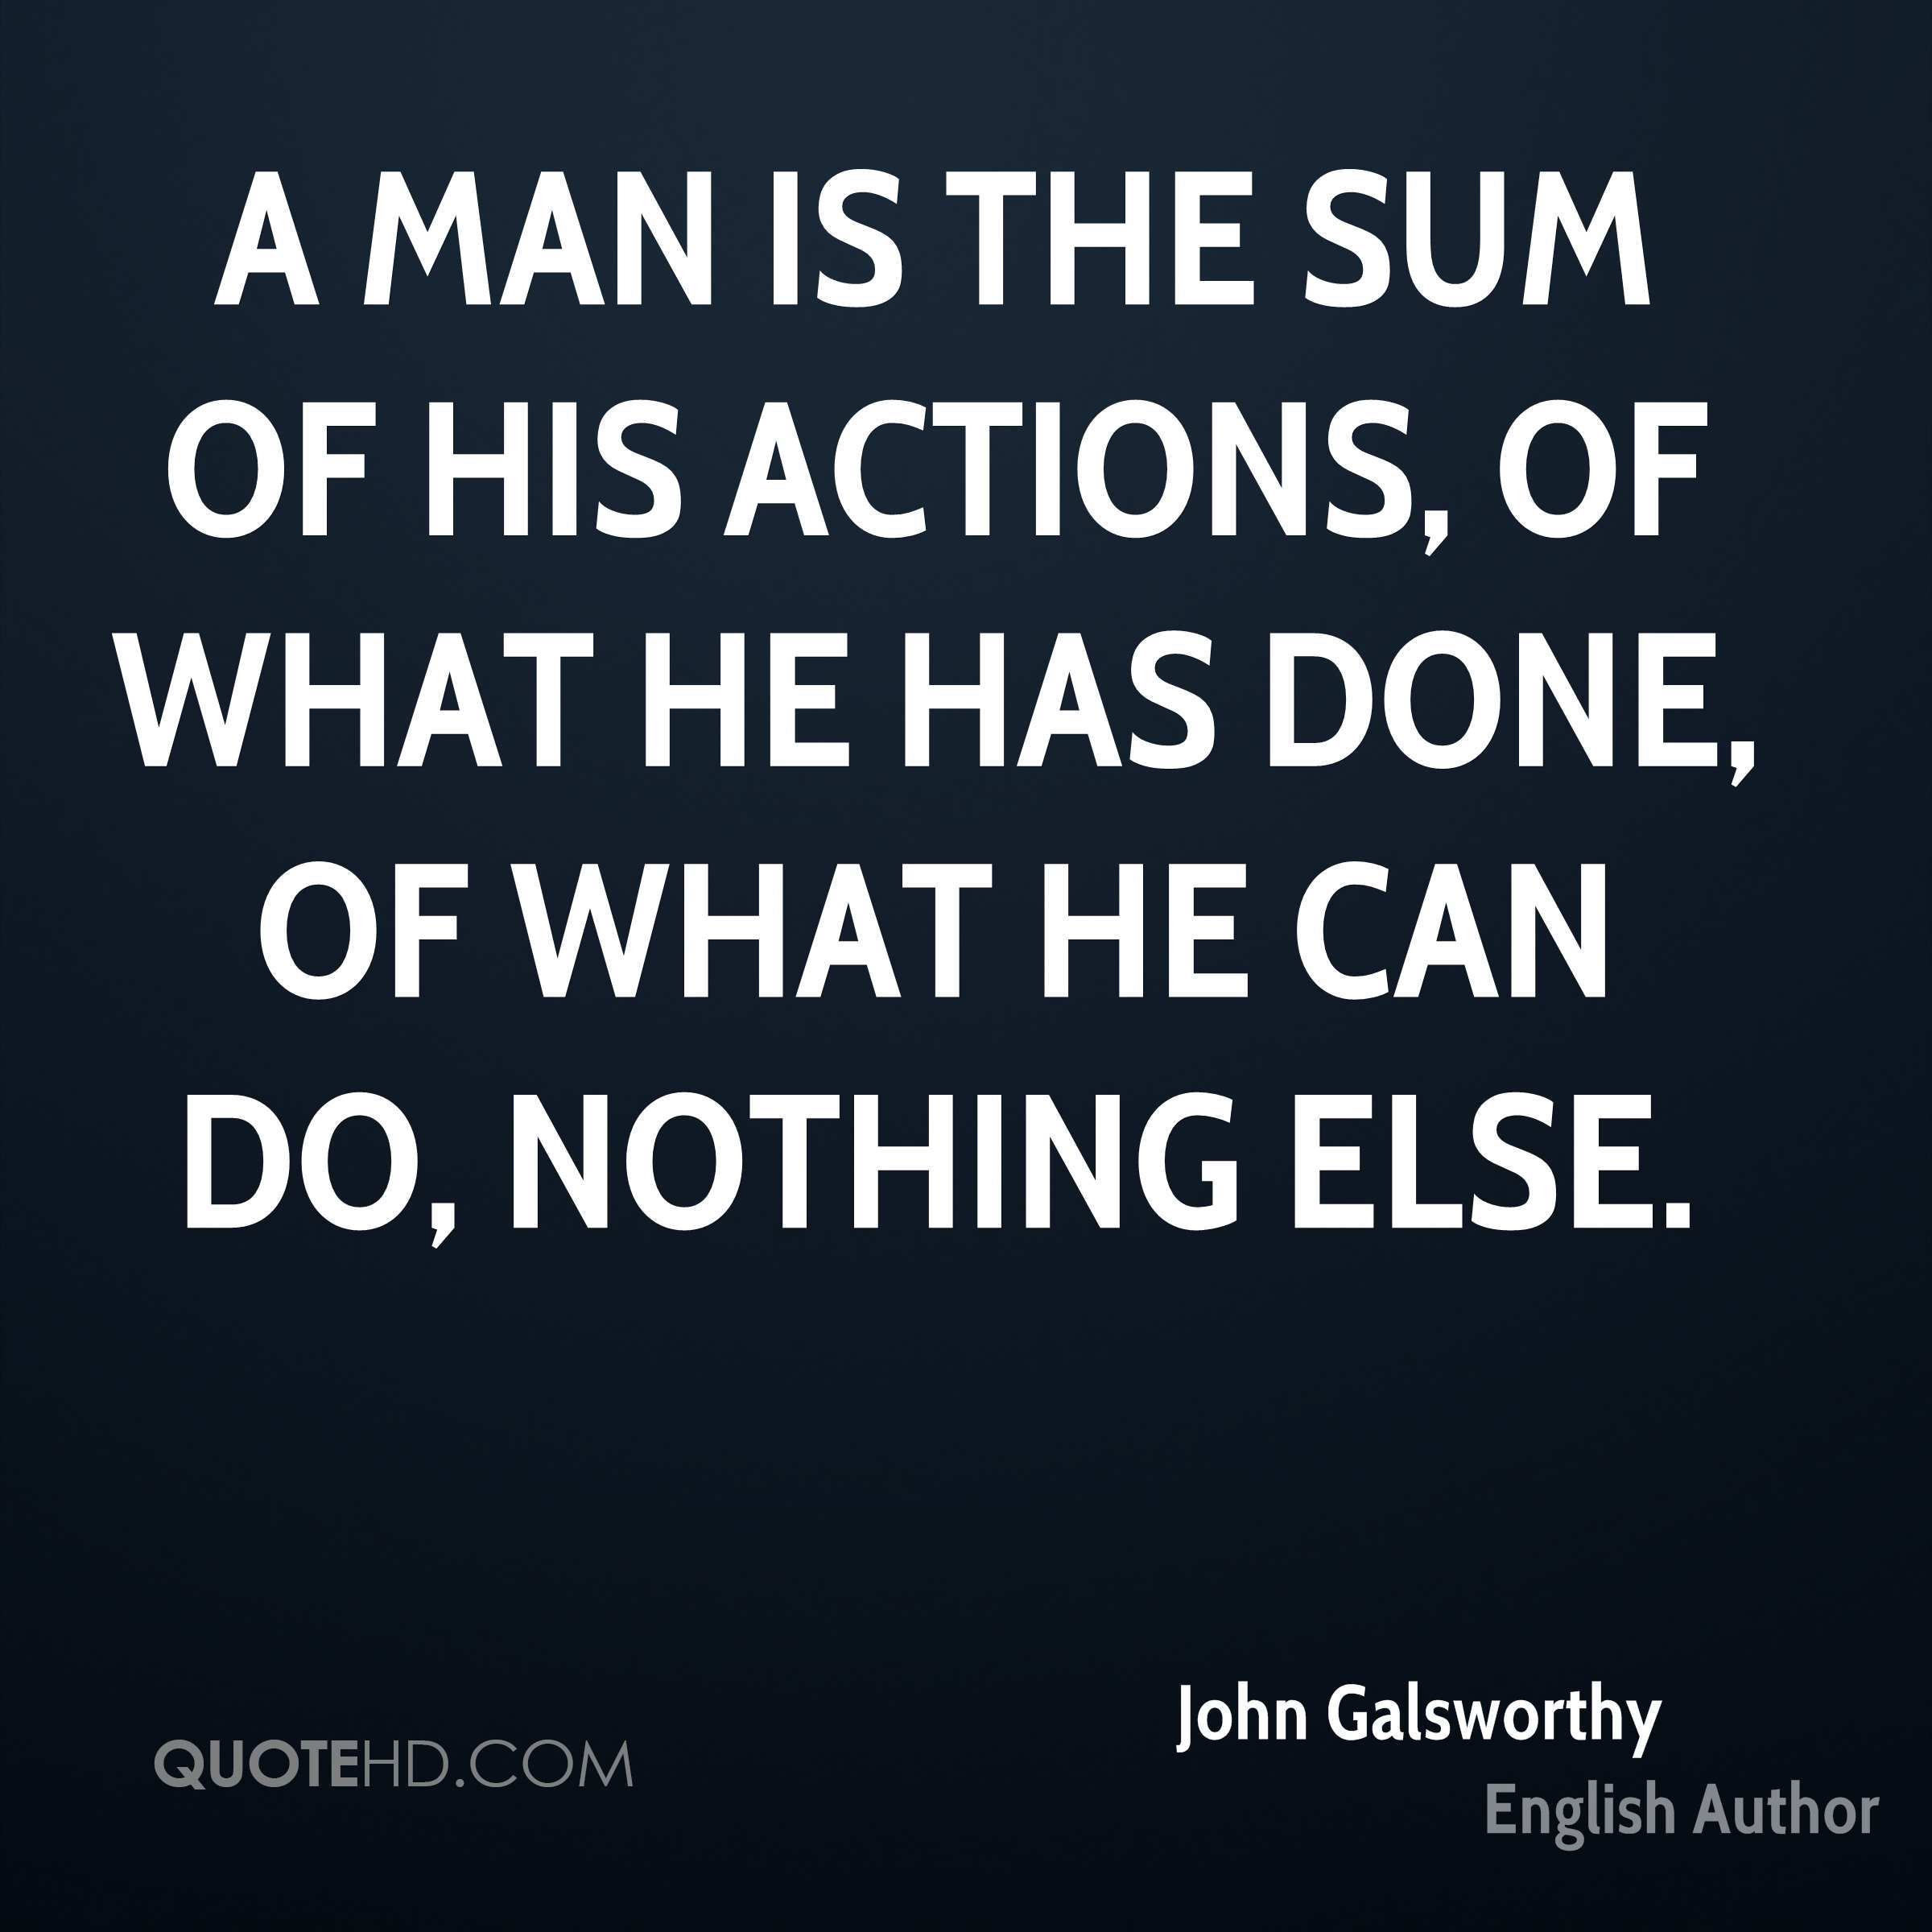 A man is the sum of his actions, of what he has done, of what he can do, Nothing else.